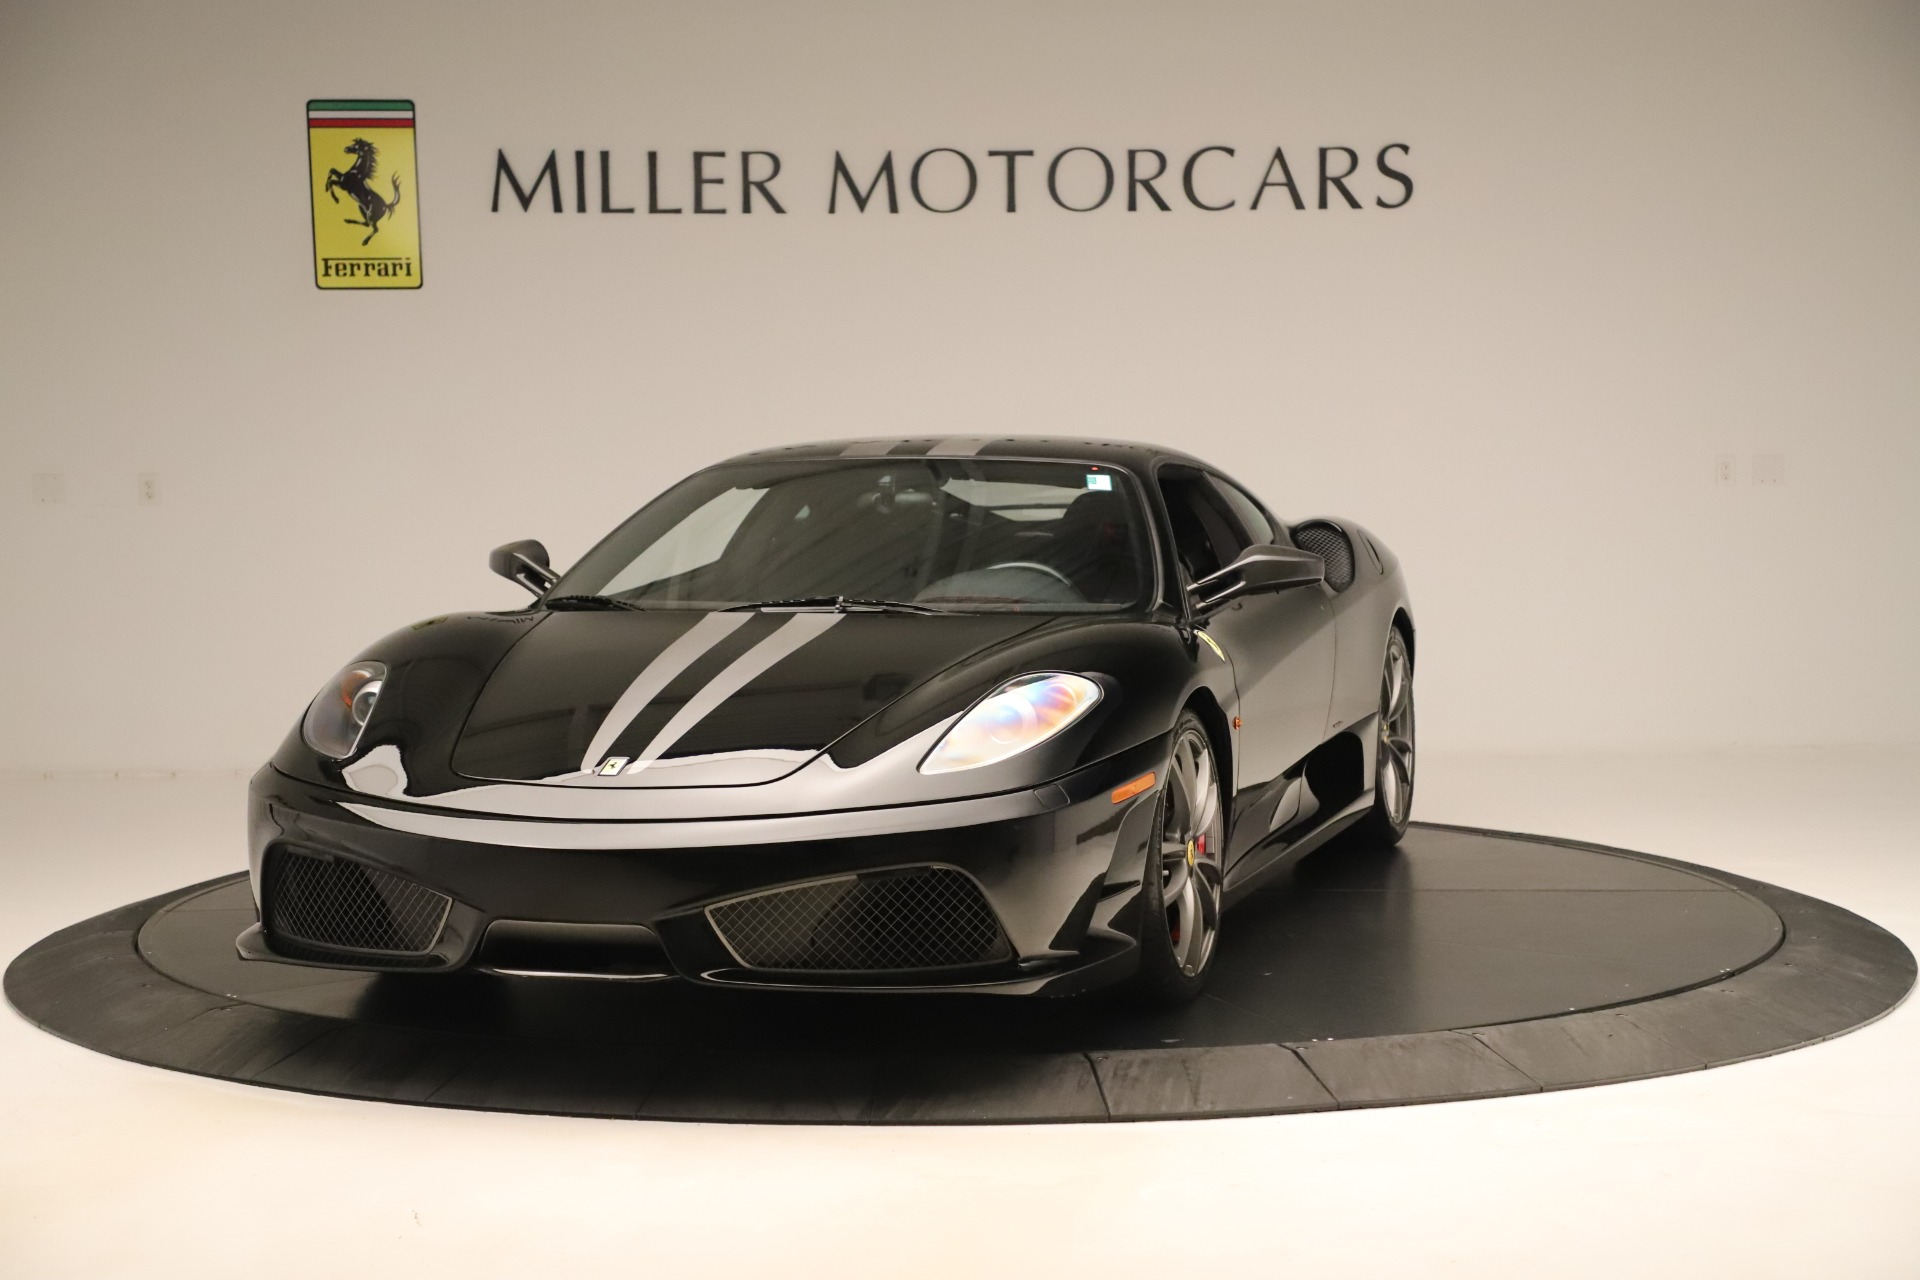 Used 2008 Ferrari F430 Scuderia for sale Sold at Alfa Romeo of Greenwich in Greenwich CT 06830 1